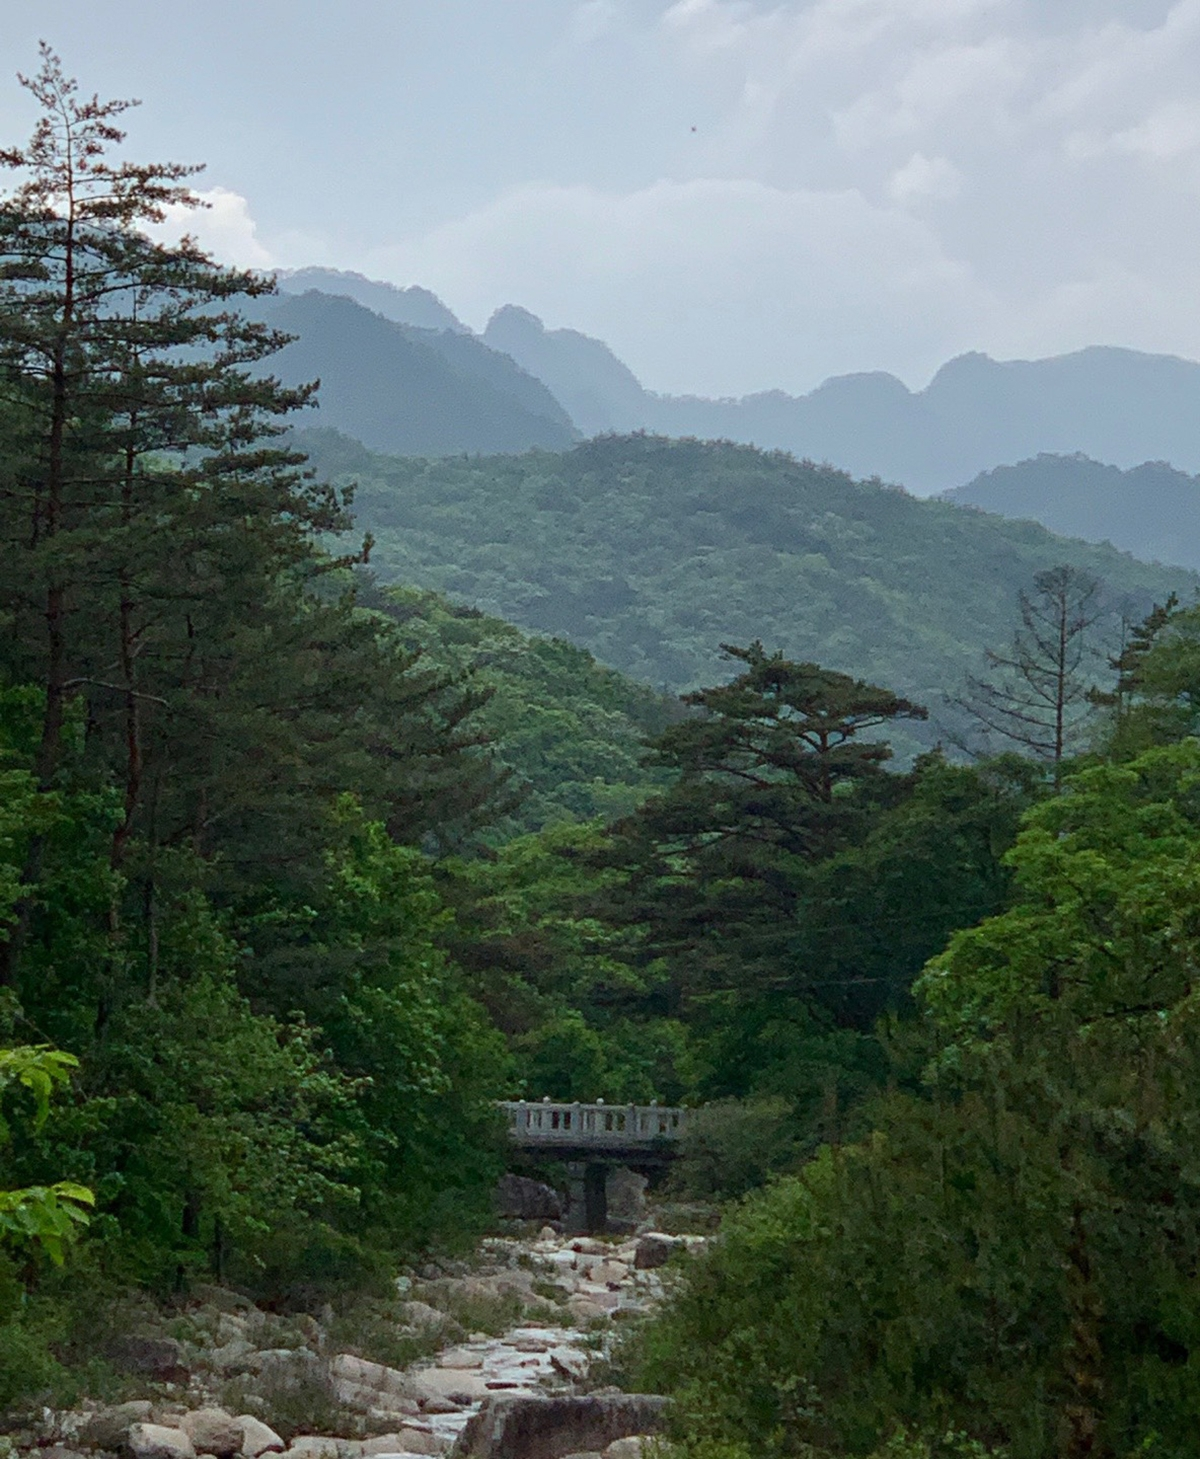 Photograph of Wolak National Park by Kimsooja